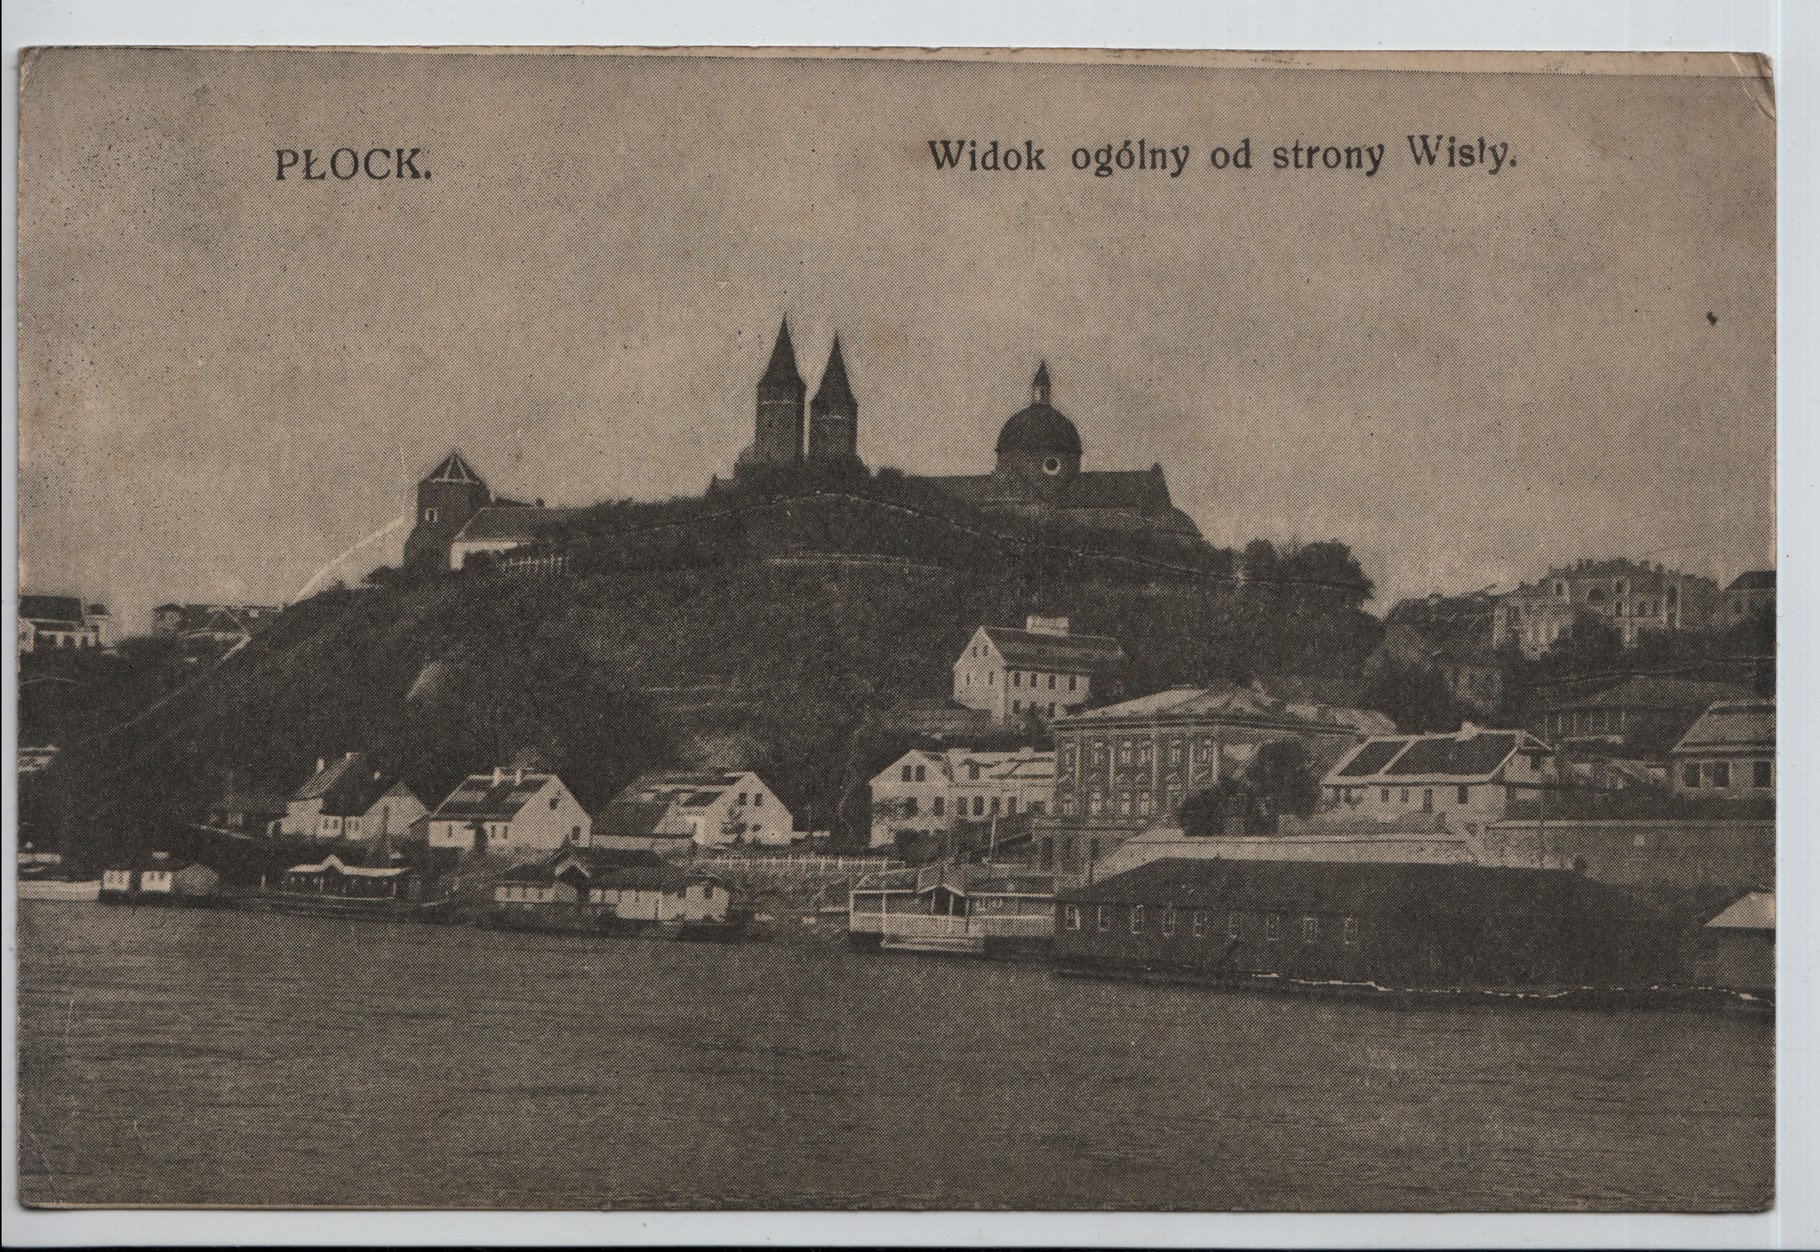 6 General view of the Wisly river at Plock